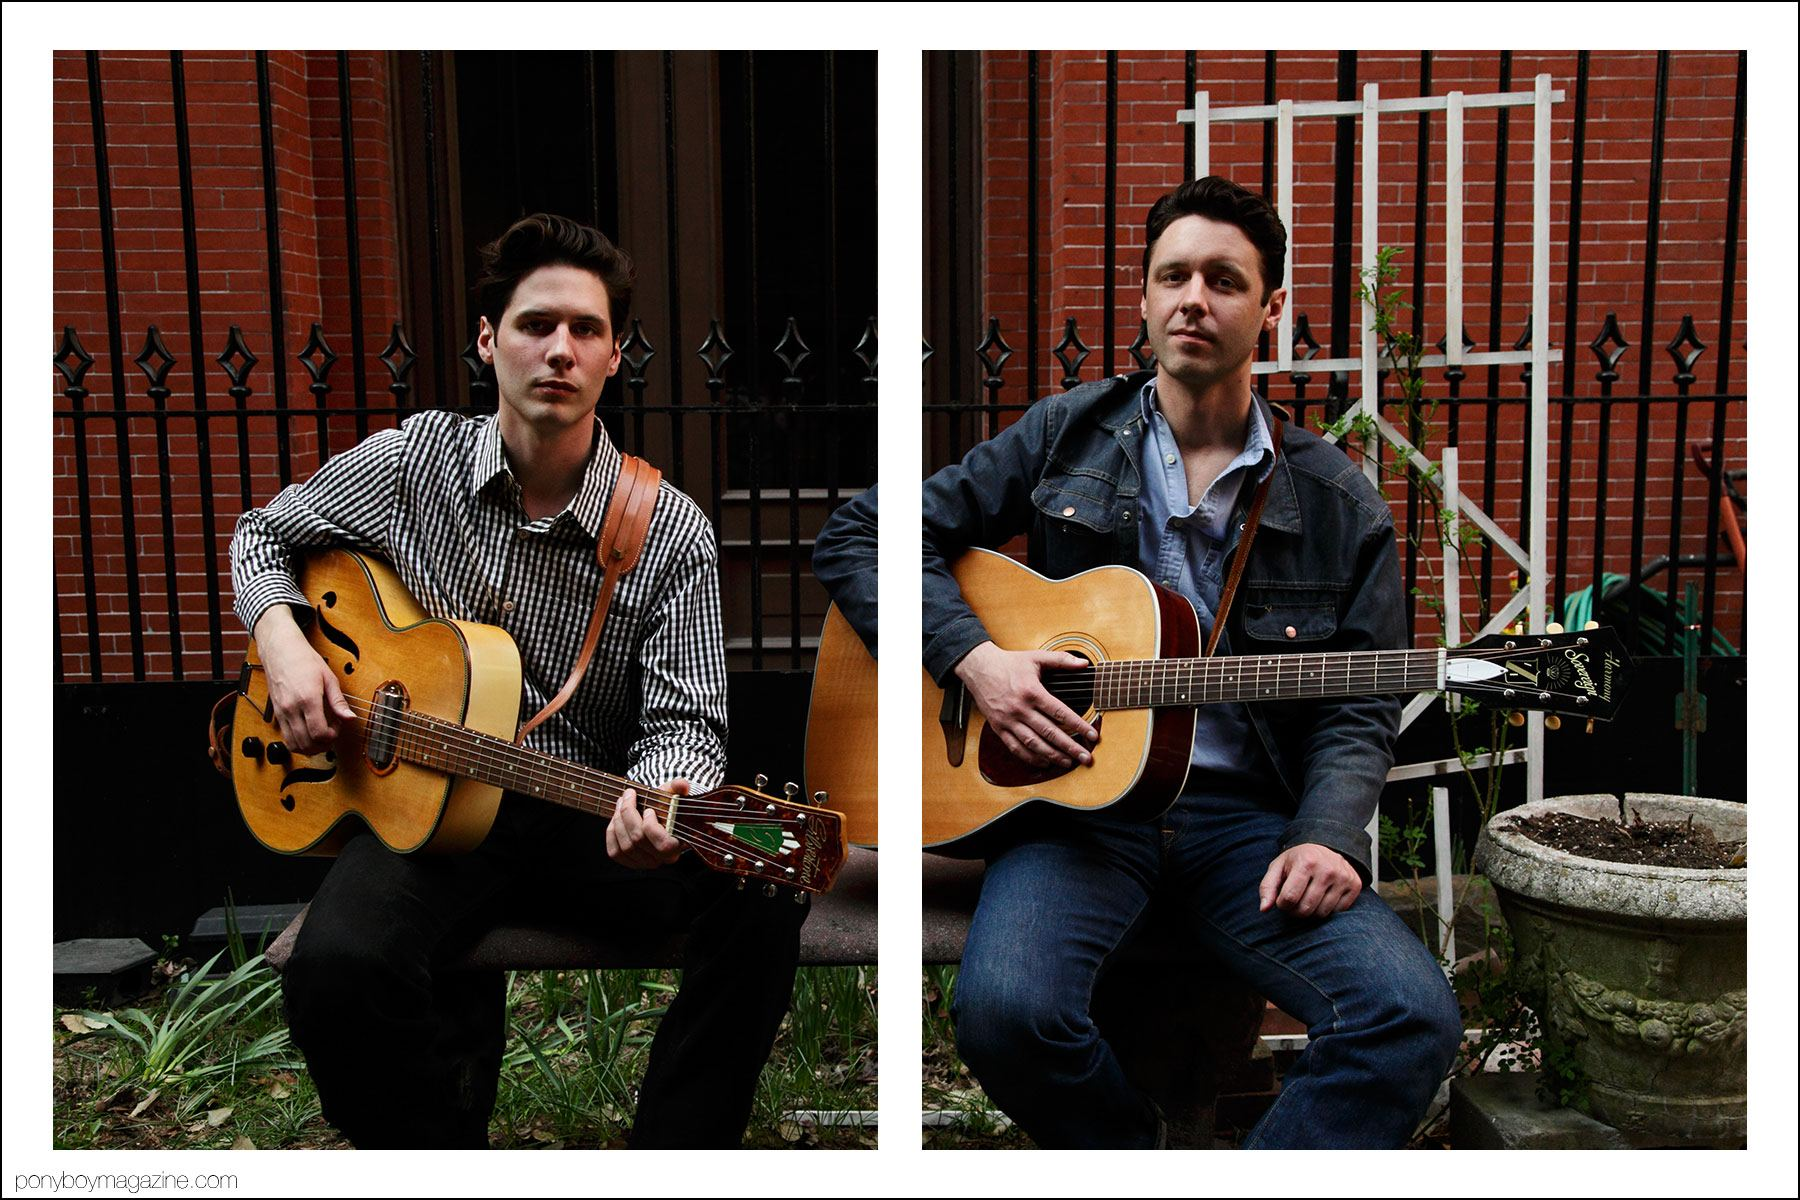 Old school country crooners the Cactus Blossoms, photographed by Alexander Thompson for Ponyboy magazine in New York.